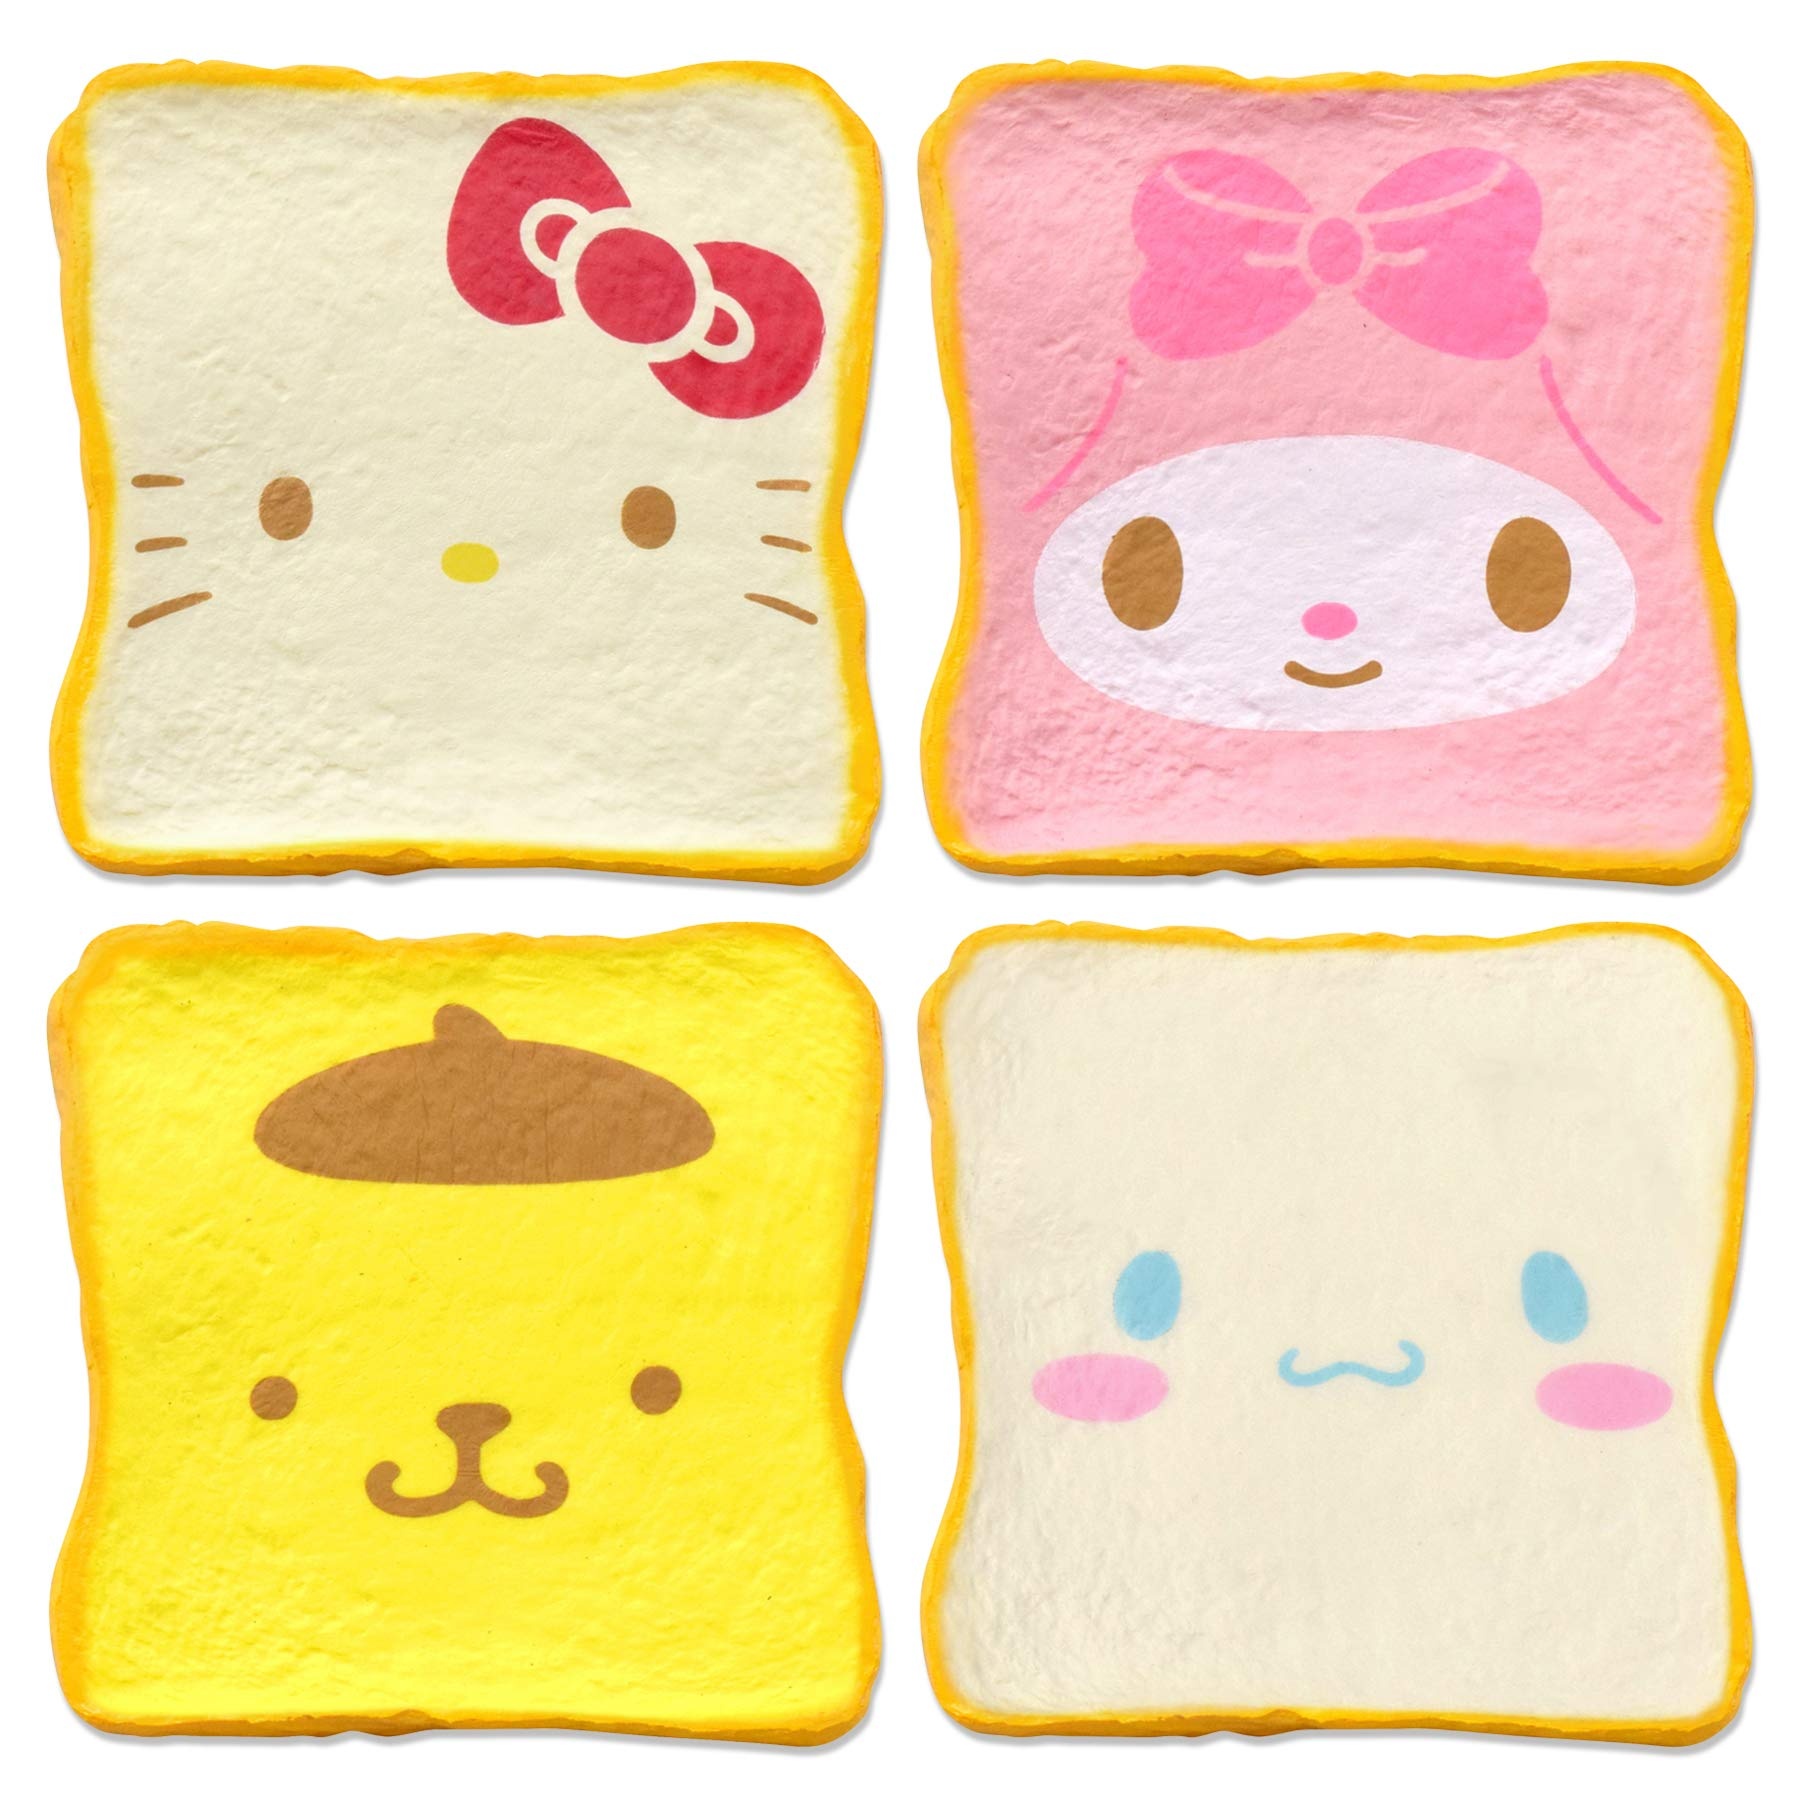 [Sanrio] Super Soft [Slow Rising] Aromatic Cute Milk Toast Squishy, Hello Kitty & Friends Set [4 Pieces] by Hamee